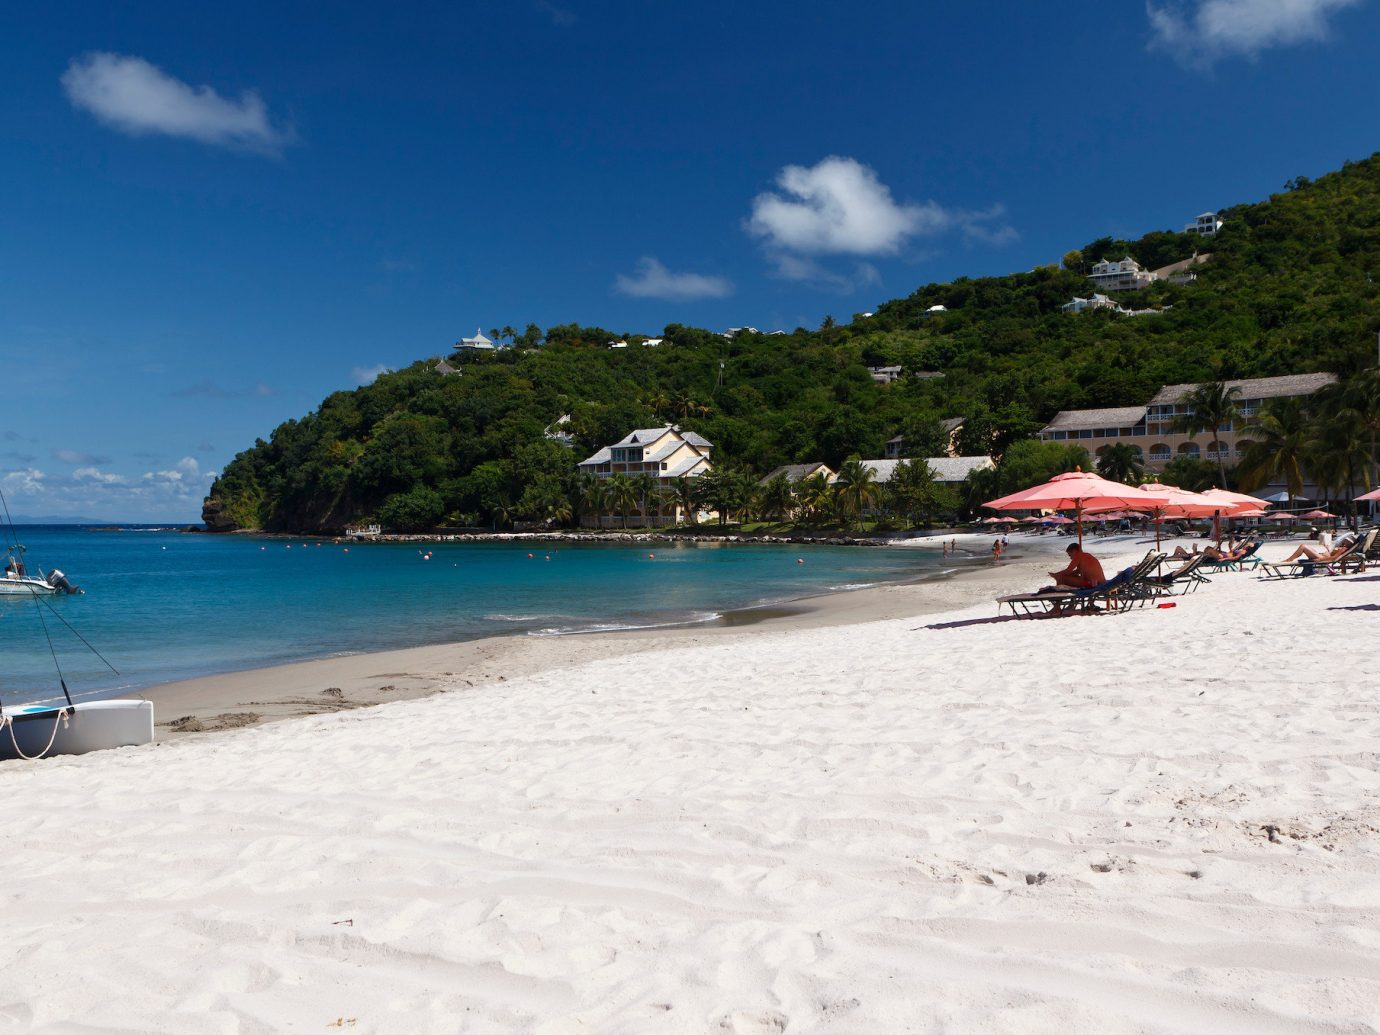 All-Inclusive Resorts Hotels outdoor sky Beach body of water coastal and oceanic landforms snow vacation tourism Sea shore Coast leisure caribbean bay summer water Ocean sand tree sandy day